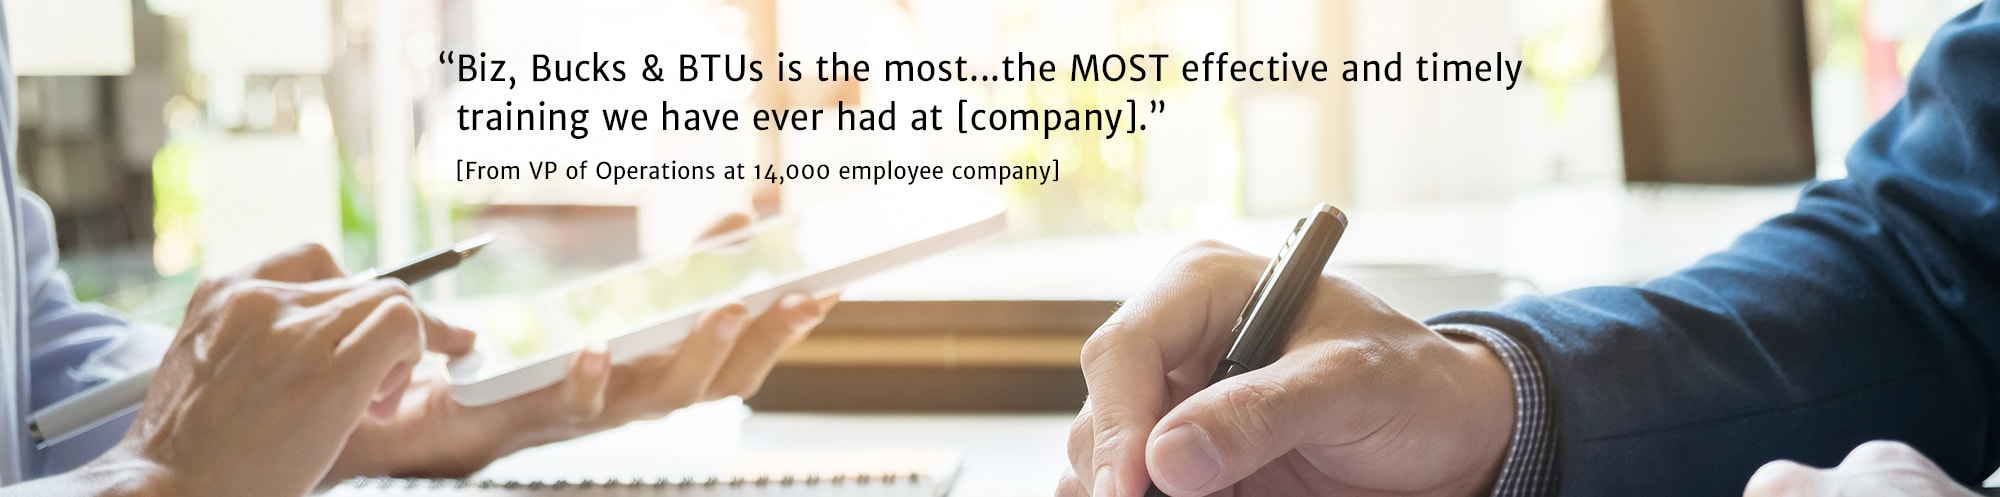 Biz, Bucks and BTUS is the most.. the MOST effective and timely training we have ever had at [company]. - From VP of Operations at 14,000 employee company